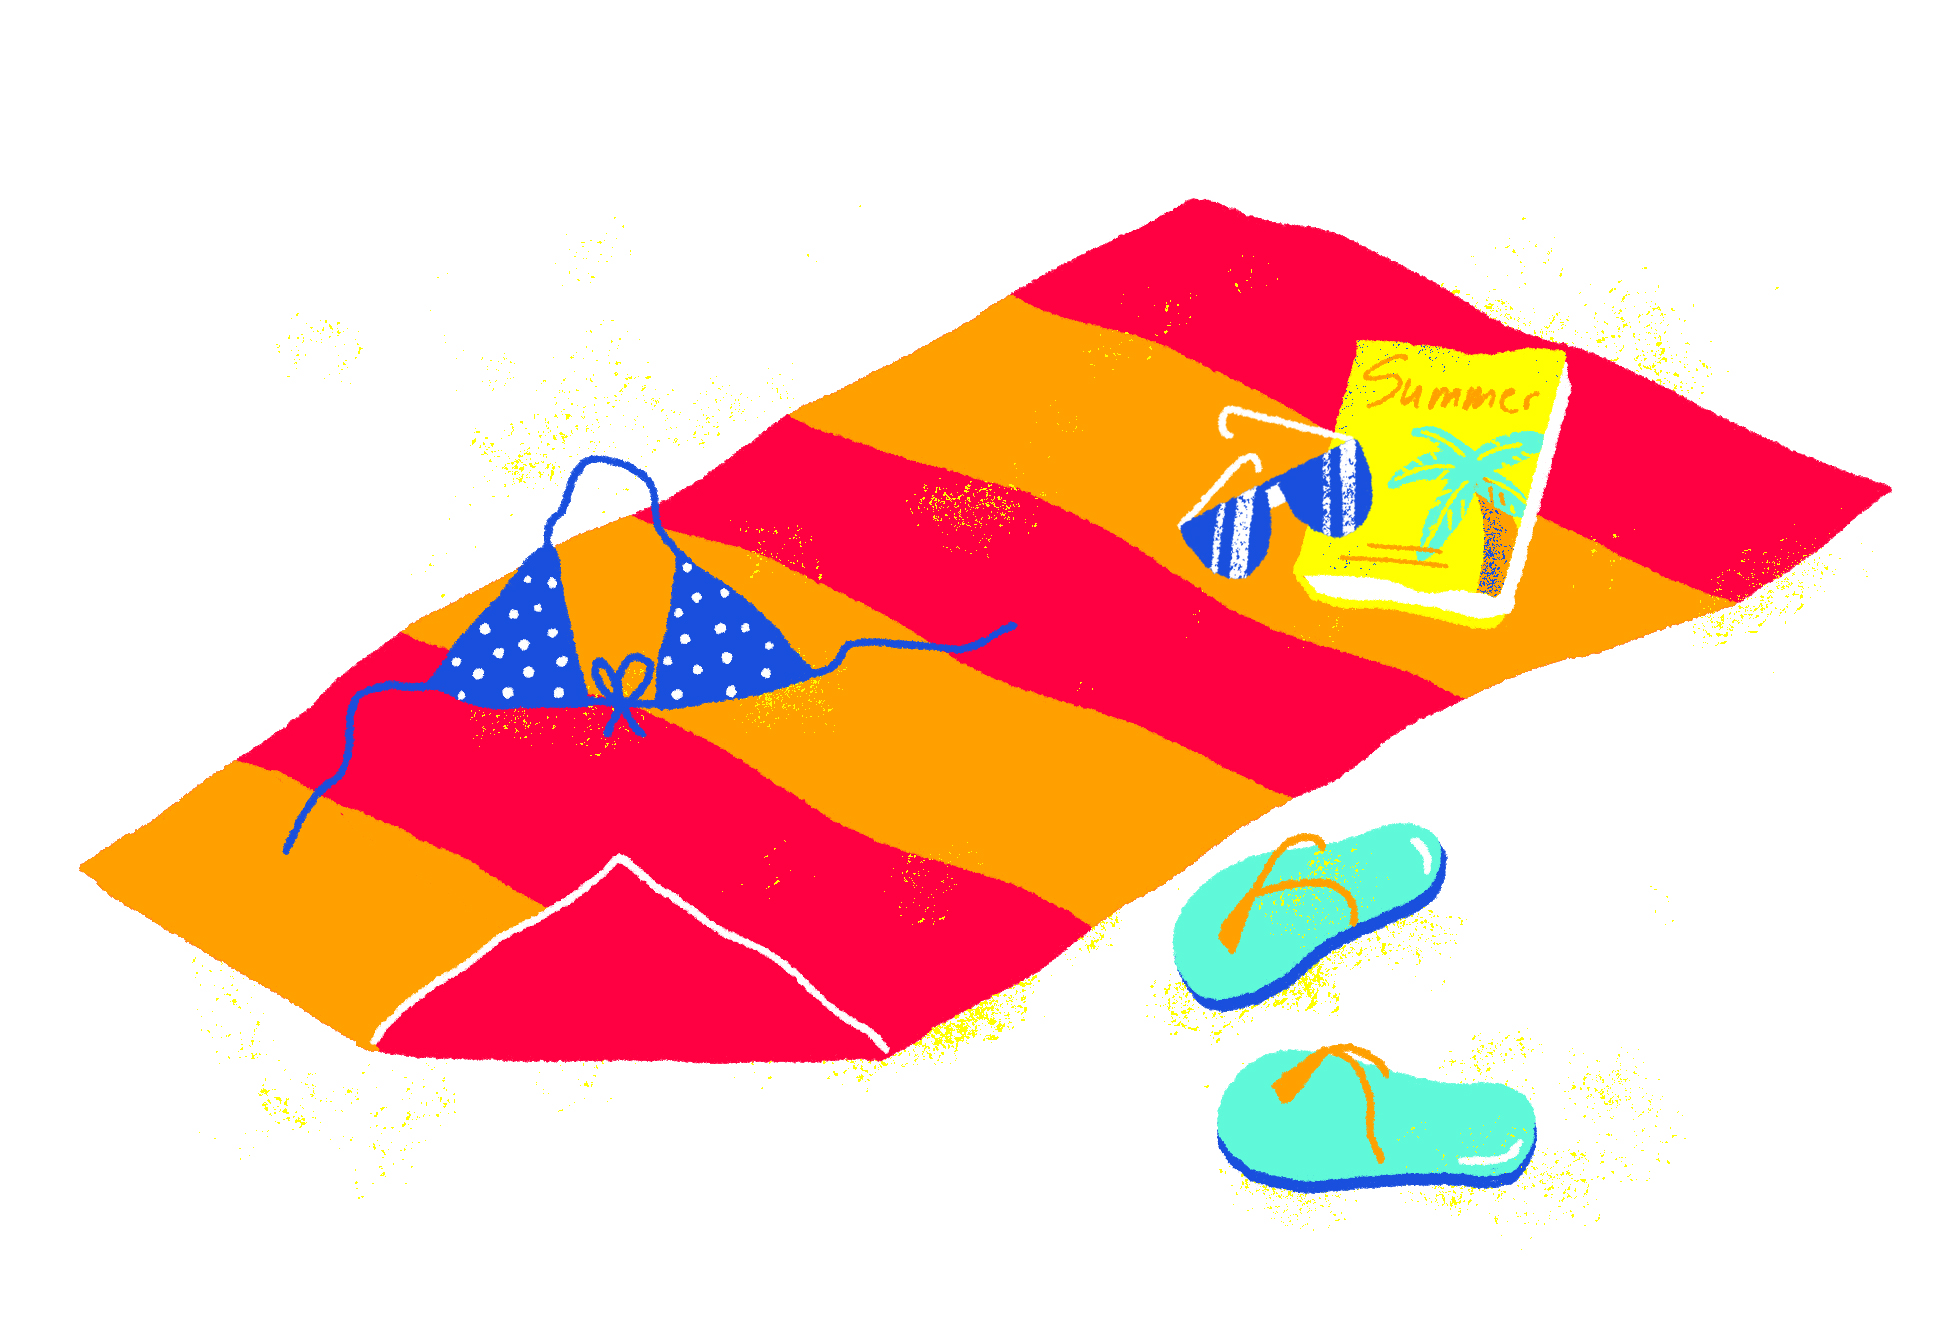 Beach towel with a bikini top, sandals, sunglasses and a book